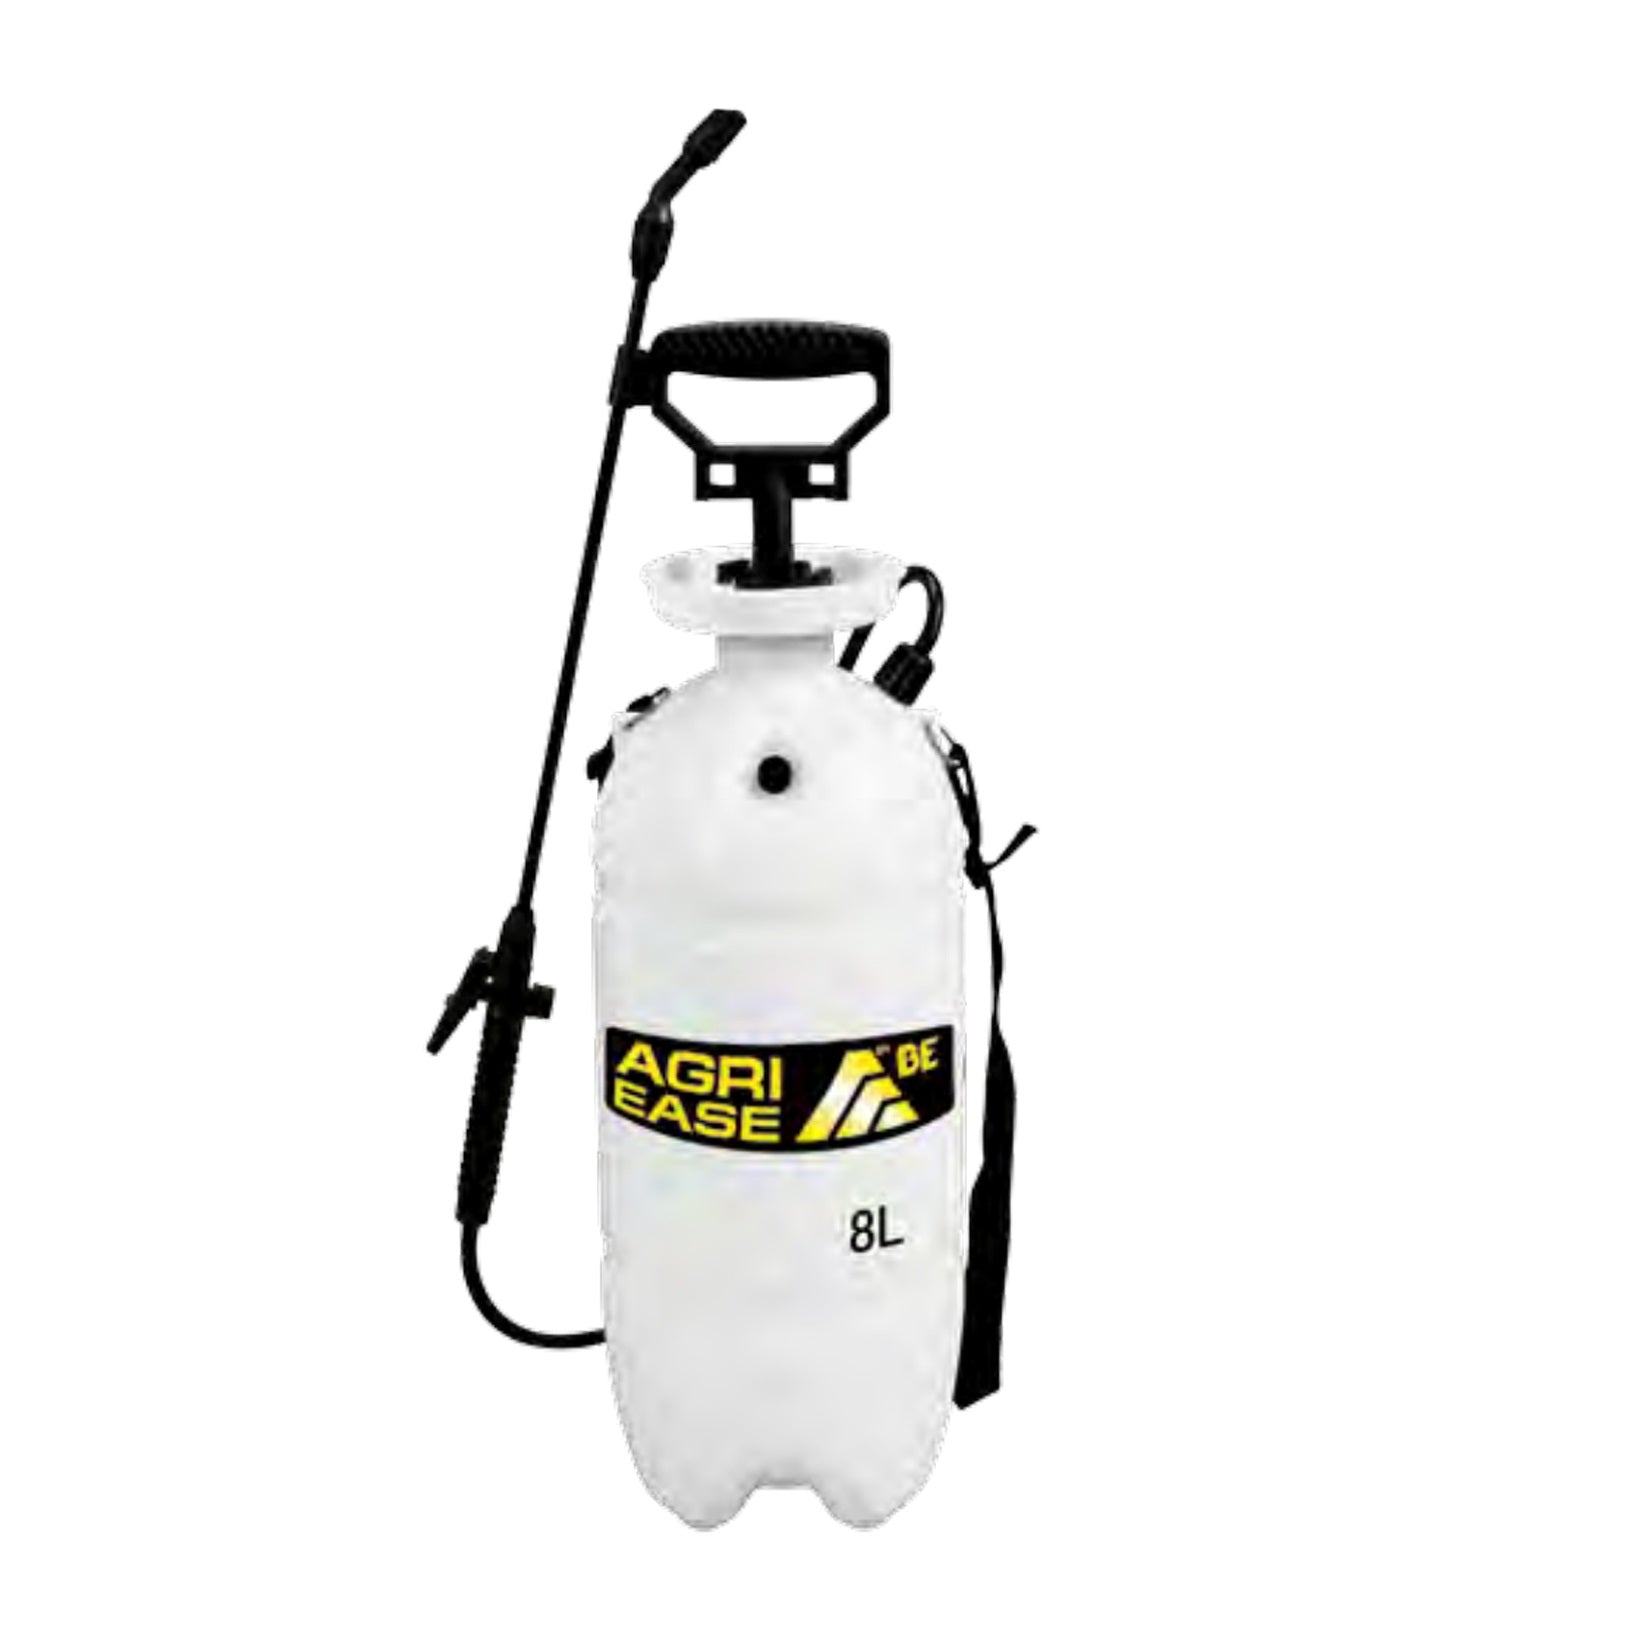 BE Handheld Pump Sprayer 8L (2.11 Gal)